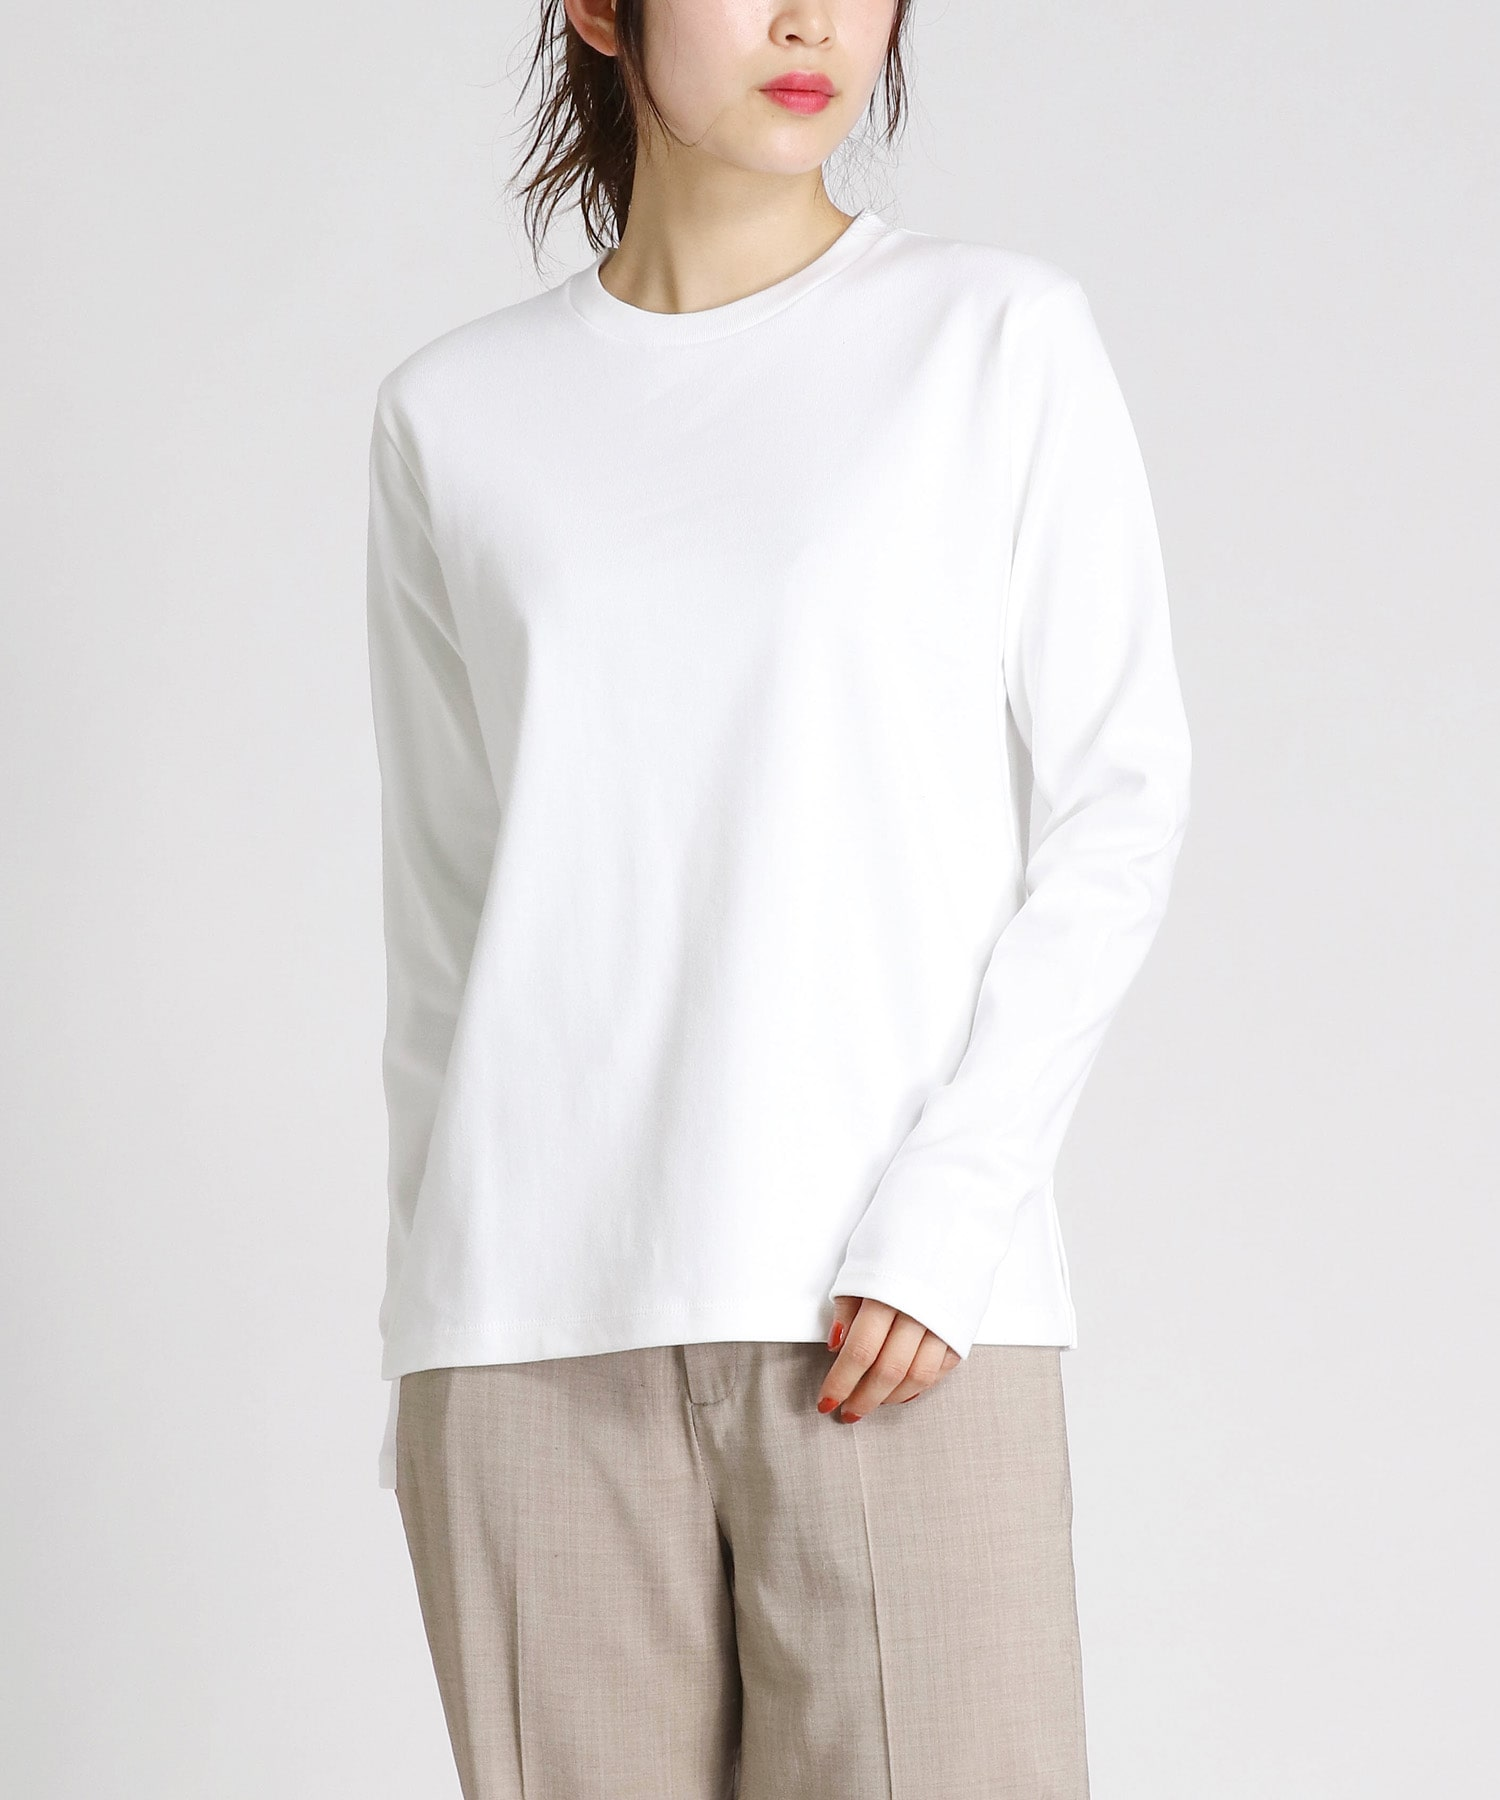 turfan cotton basic long tee